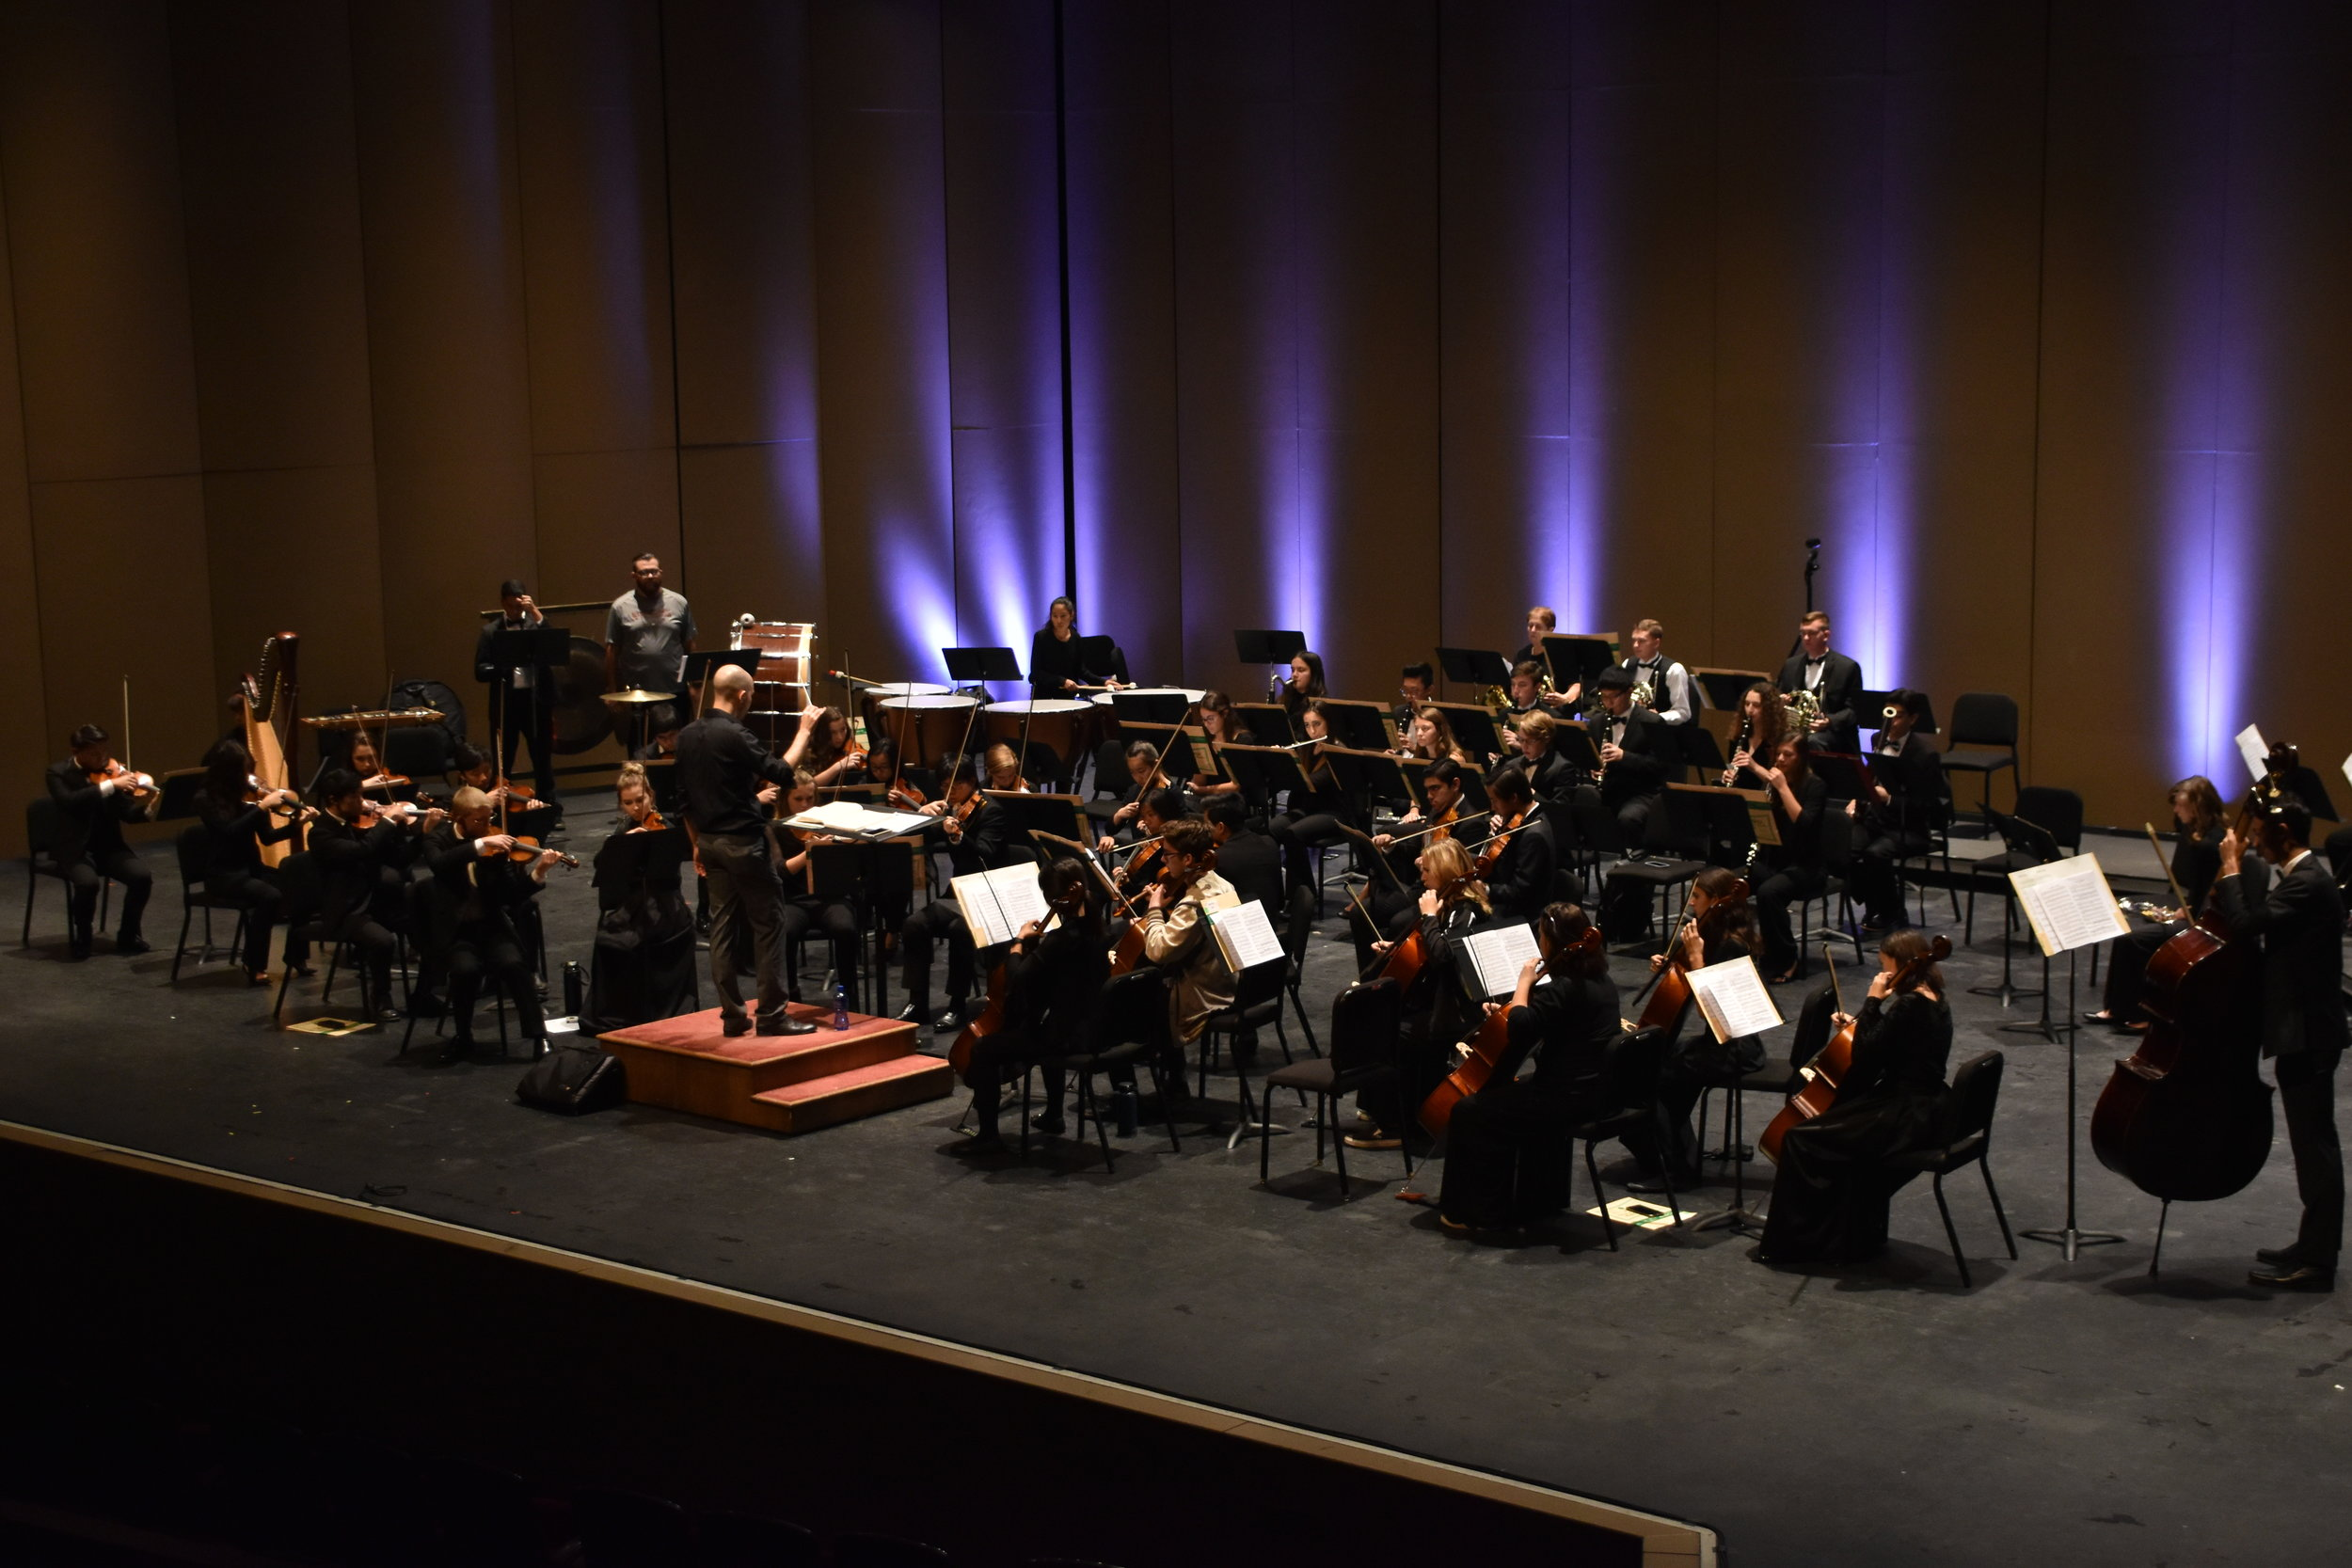 MSYO Season Opening Concert - Saturday, November 2, 2019 - 2 pmGallo Center For the ArtsRyan Murray, MSYO Music Director